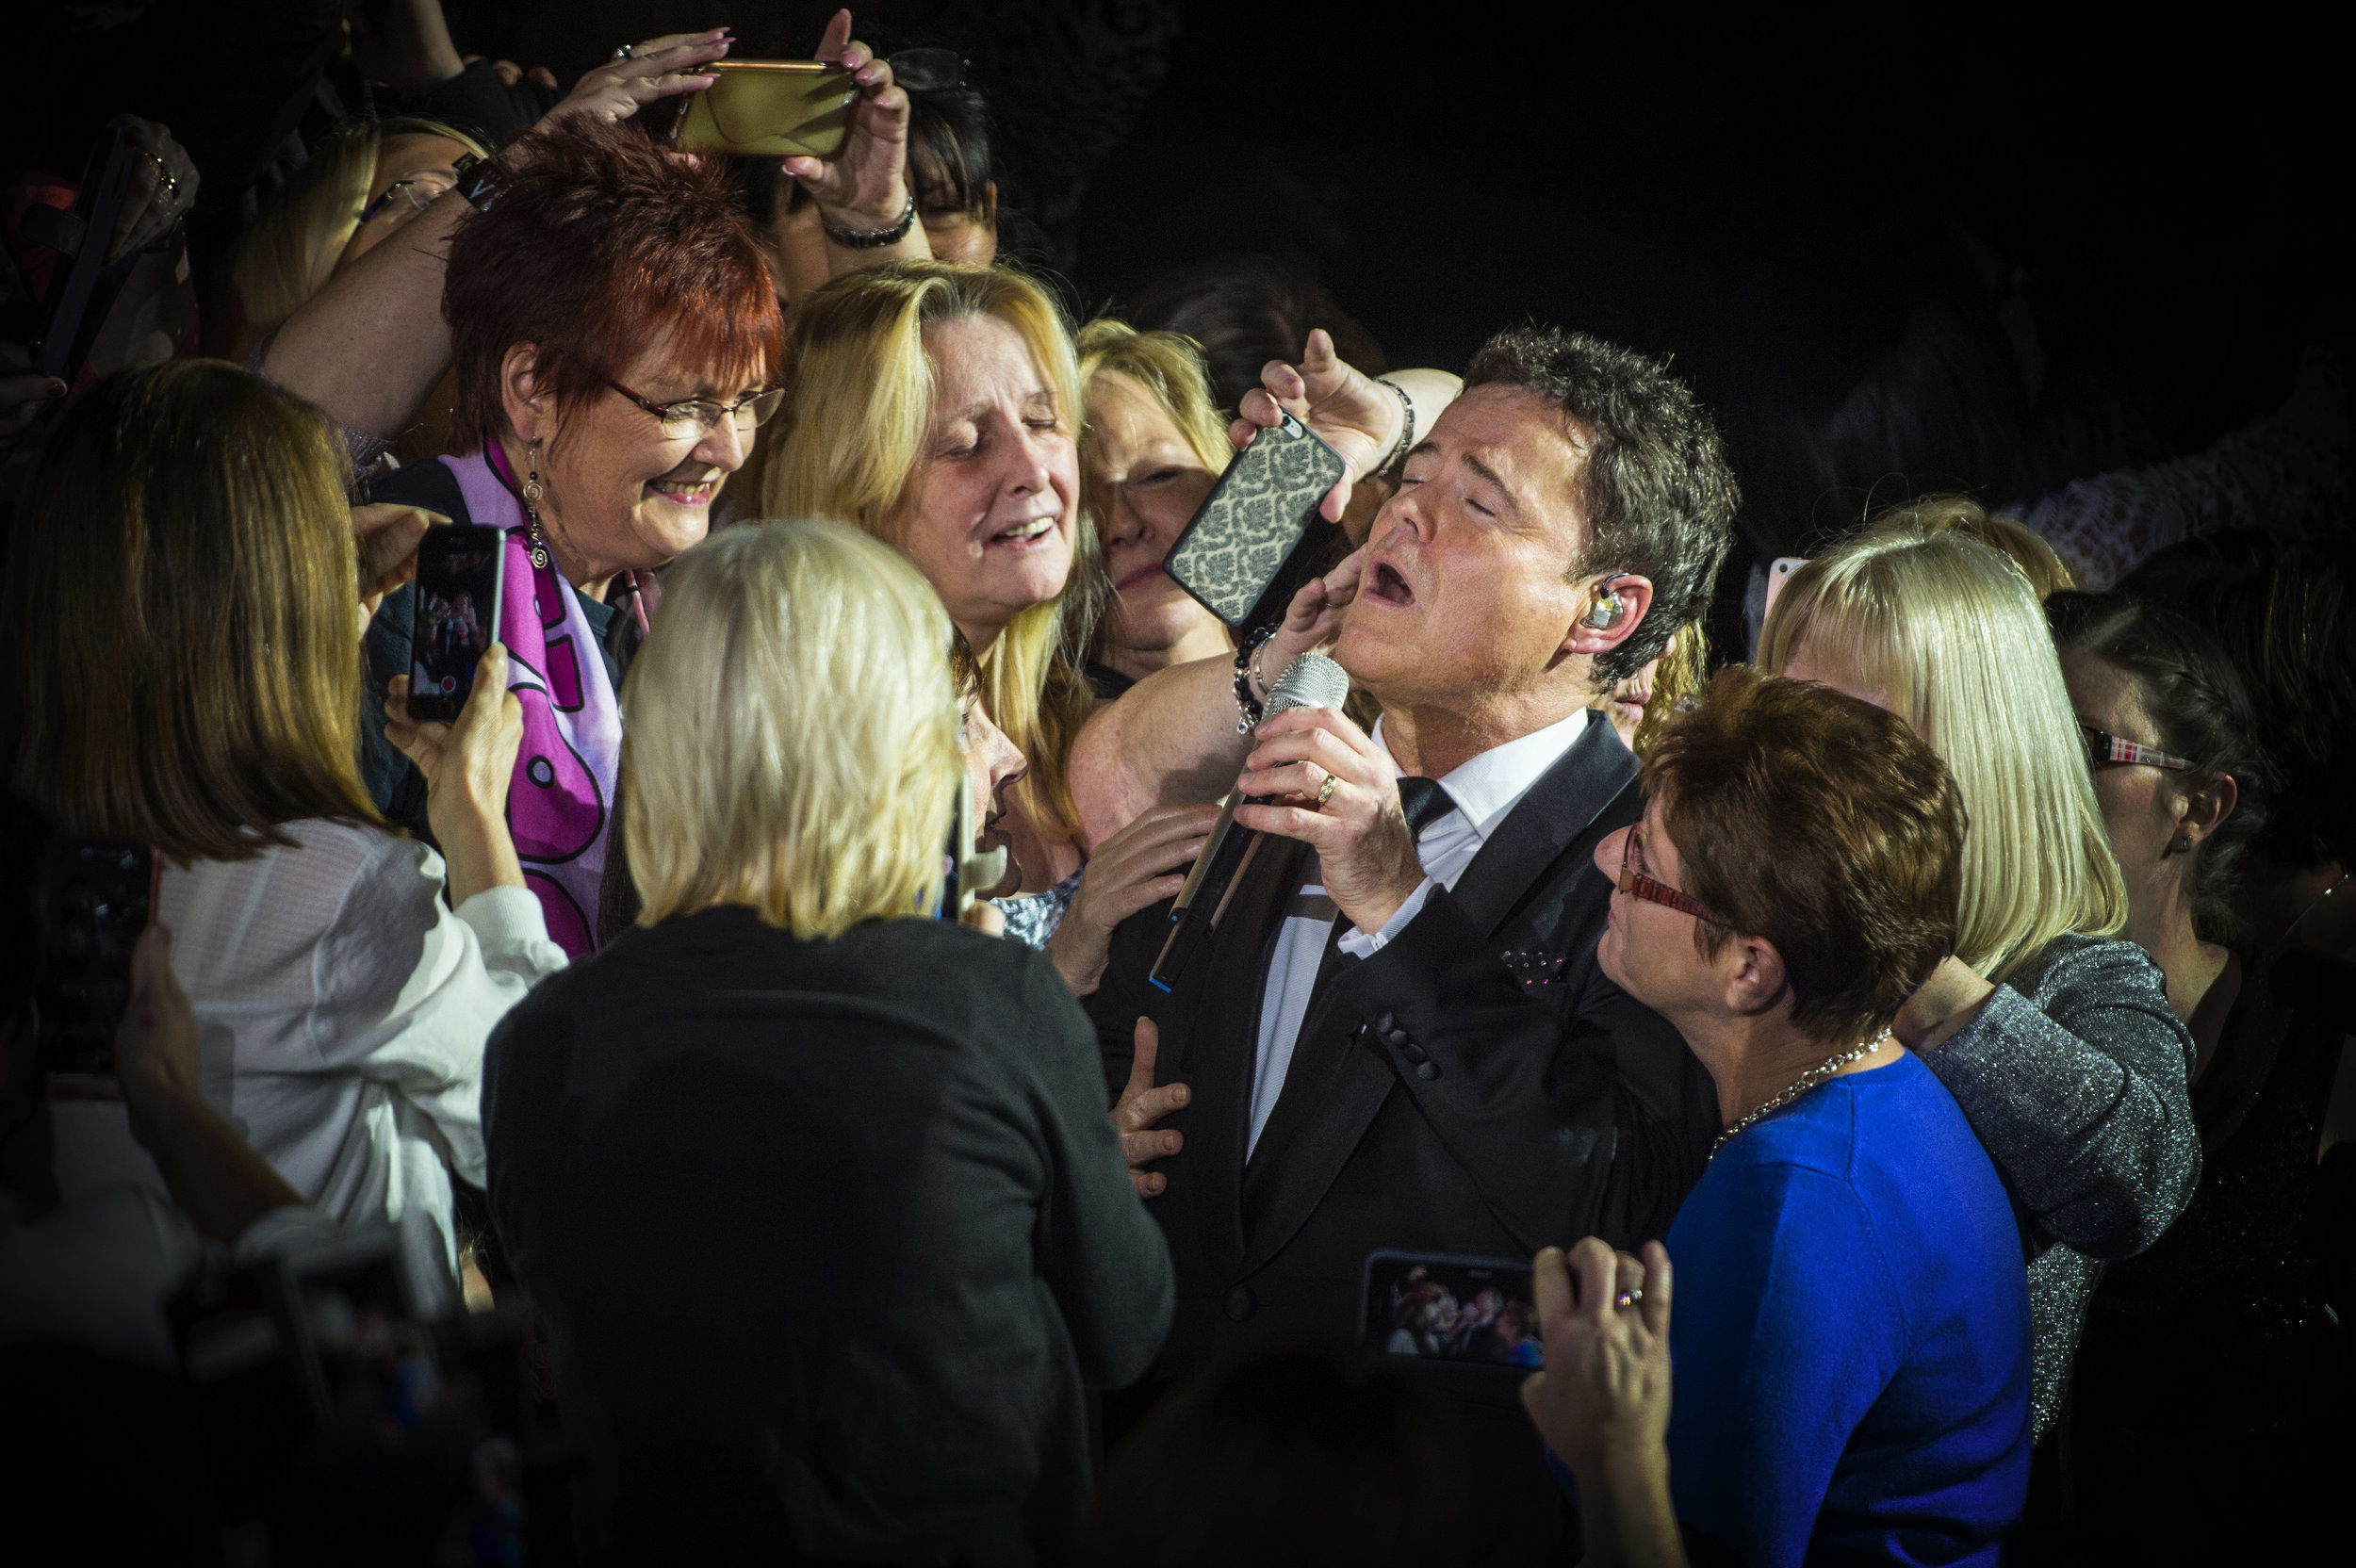 Singer Donny Osmond performs at the Manchester Arena on the first date of his �The Soundtrack of my Life� UK tour.Photo by Bruce Adams  21 January 2017